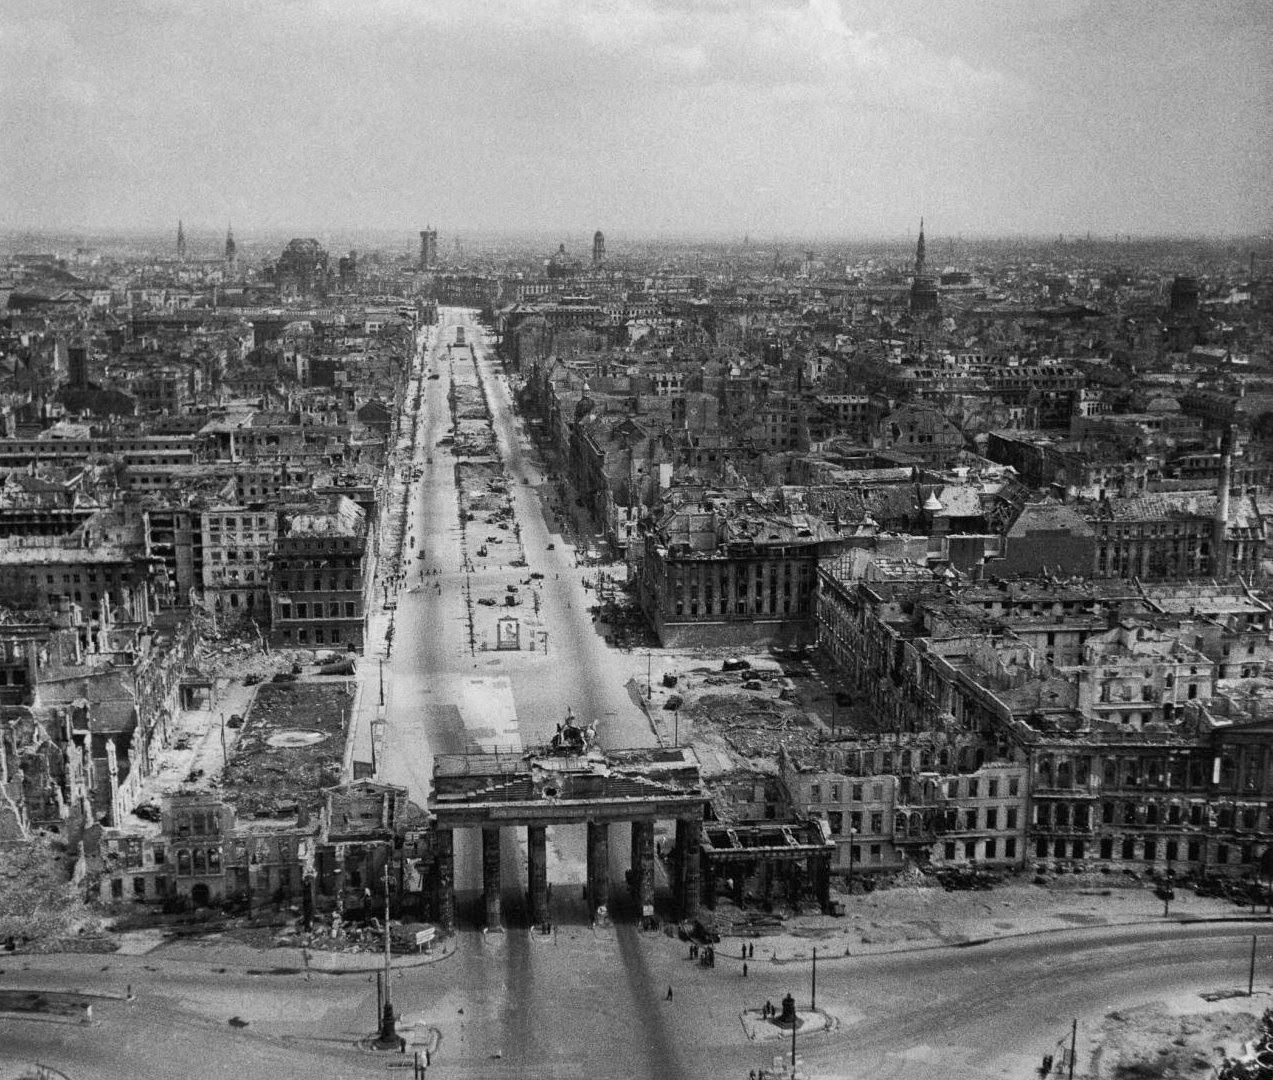 Russia Map After Ww2%0A These are some powerful and sad photos of the impressive Brandenburg Gate  in Berlin  Germany  These were all taken around the end of World War II